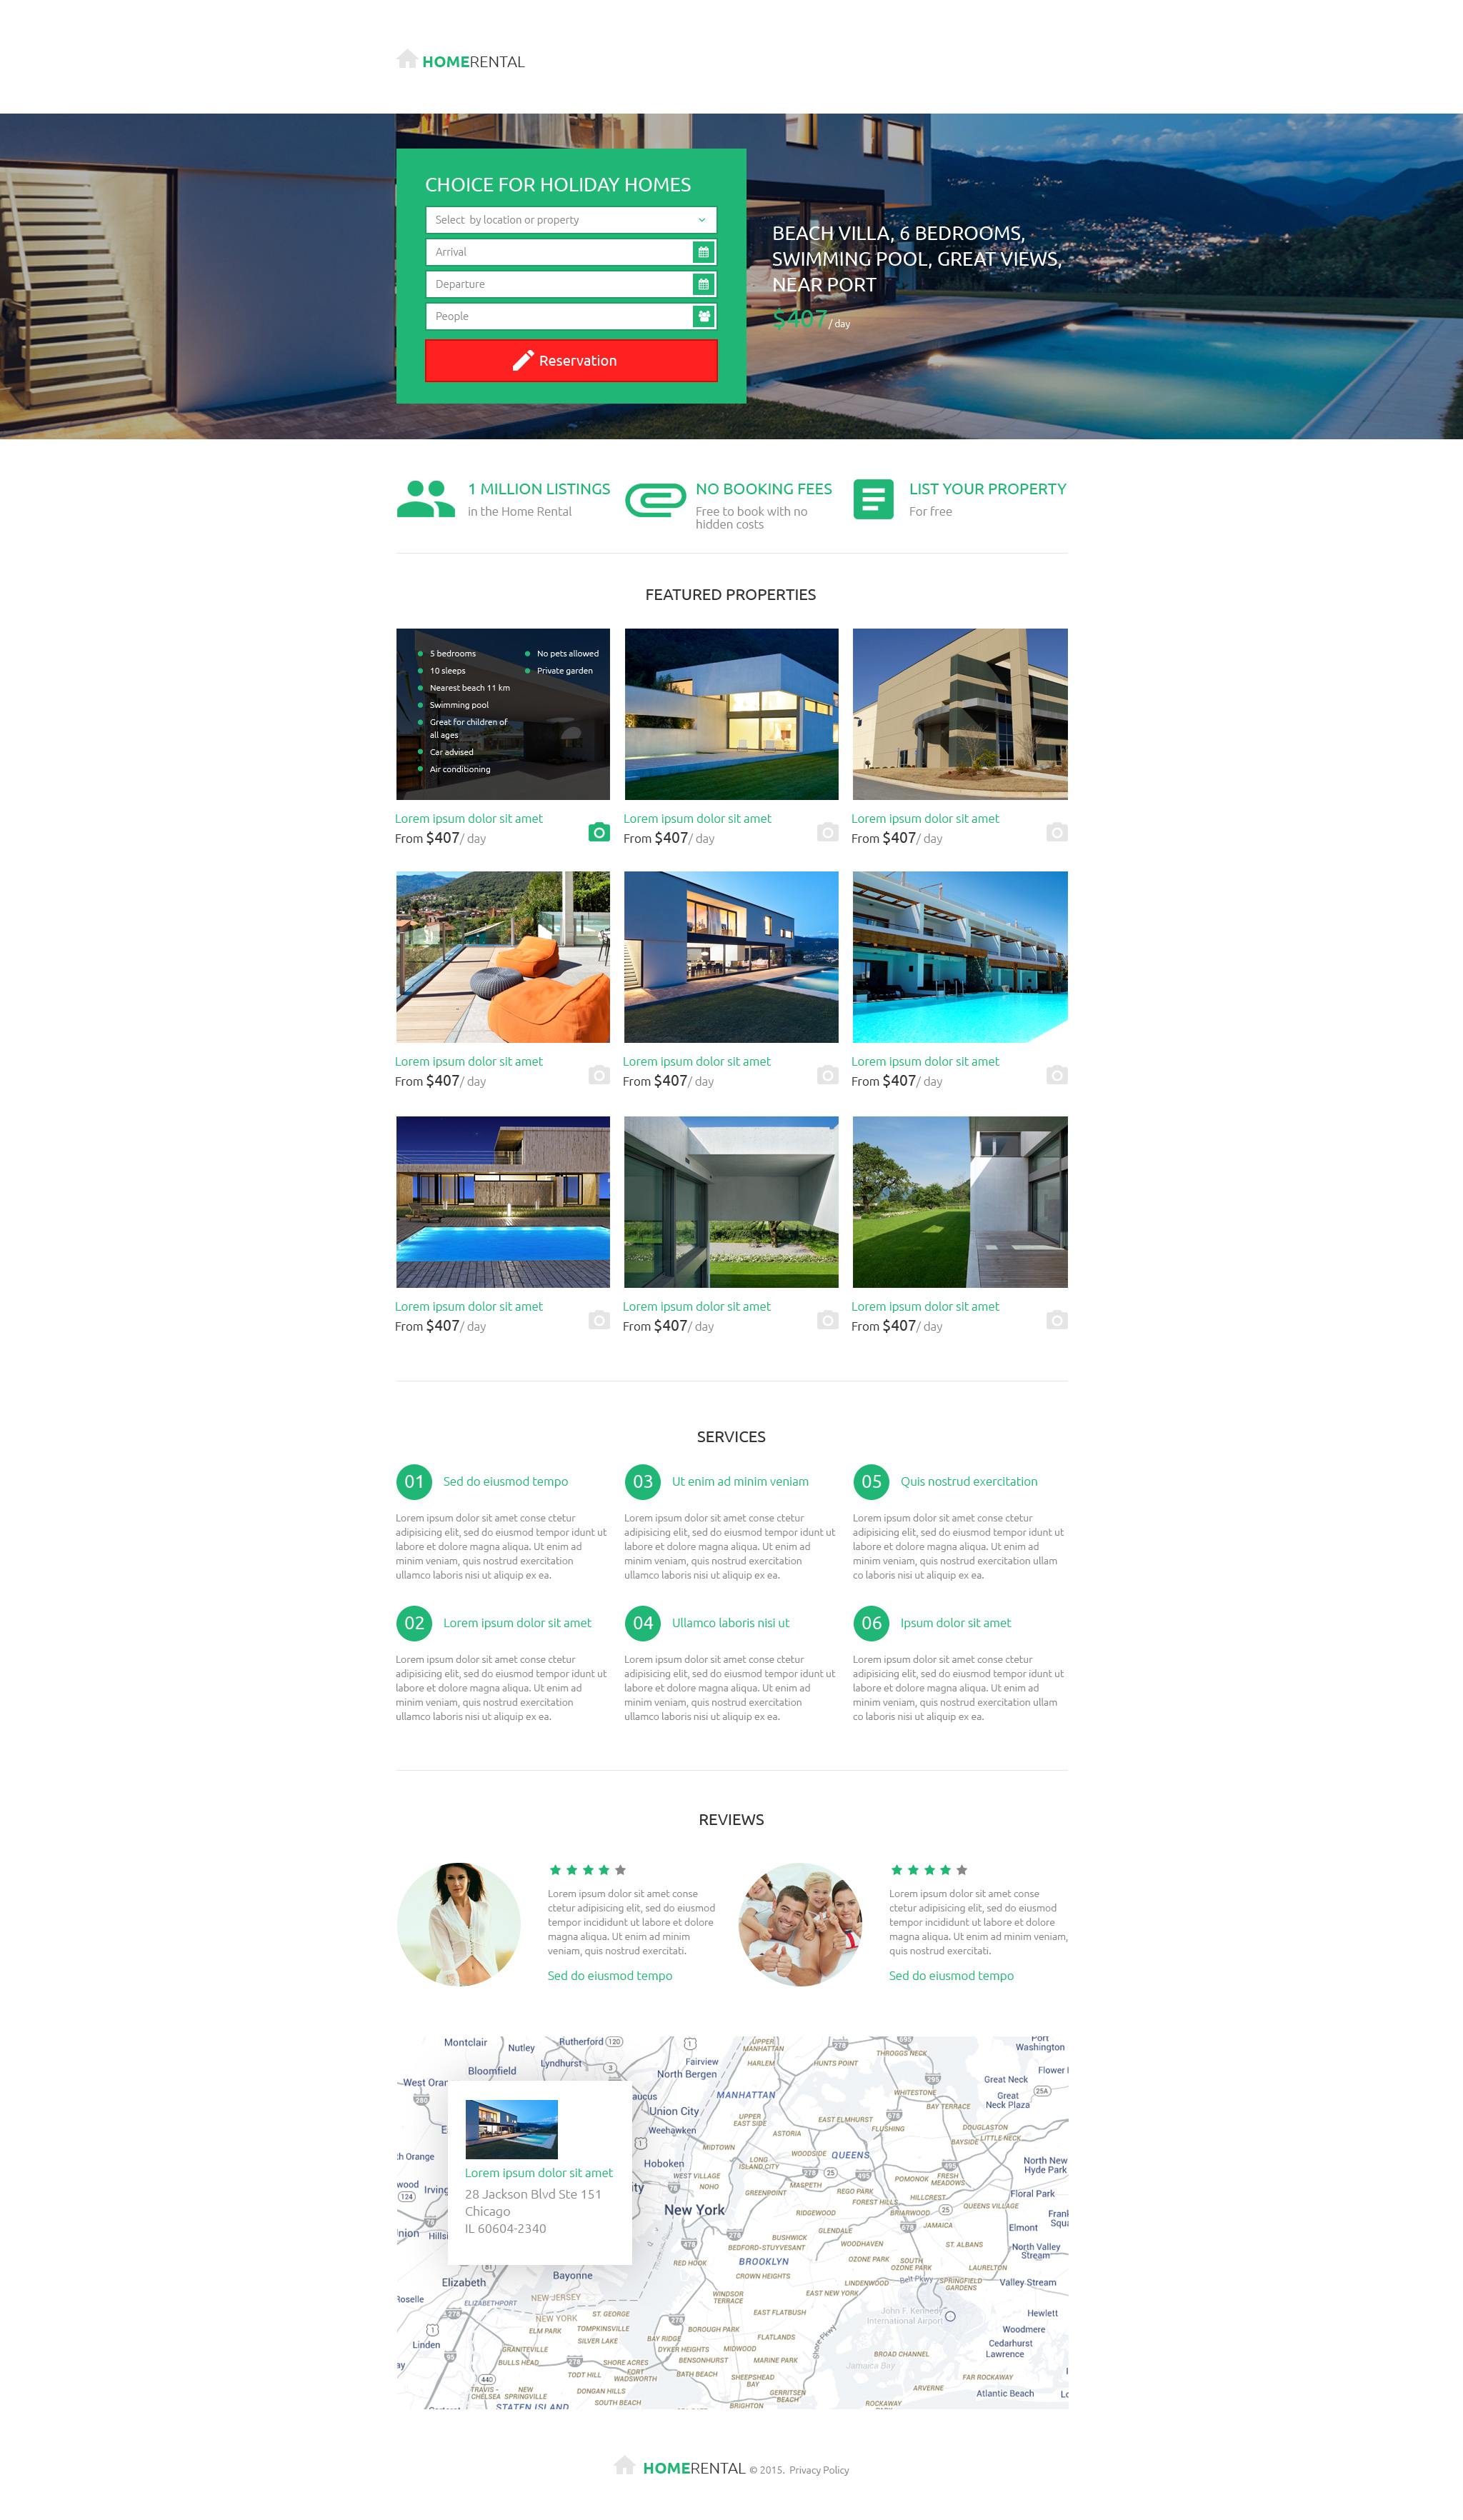 The Real Estate Agency Unbounce Template Design 53205, one of the best Unbounce templates of its kind (real estate), also known as real estate agency Unbounce template, services Unbounce template, house Unbounce template, home Unbounce template, apartment Unbounce template, buildings Unbounce template, finance Unbounce template, loan Unbounce template, sales Unbounce template, rentals Unbounce template, management Unbounce template, search Unbounce template, team Unbounce template, money Unbounce template, foreclosure Unbounce template, estimator Unbounce template, investment Unbounce template, development Unbounce template, constructions Unbounce template, architecture Unbounce template, engineering Unbounce template, apartment Unbounce template, sale Unbounce template, rent Unbounce template, arch and related with real estate agency, services, house, home, apartment, buildings, finance, loan, sales, rentals, management, search, team, money, foreclosure, estimator, investment, development, constructions, architecture, engineering, apartment, sale, rent, arch, etc.